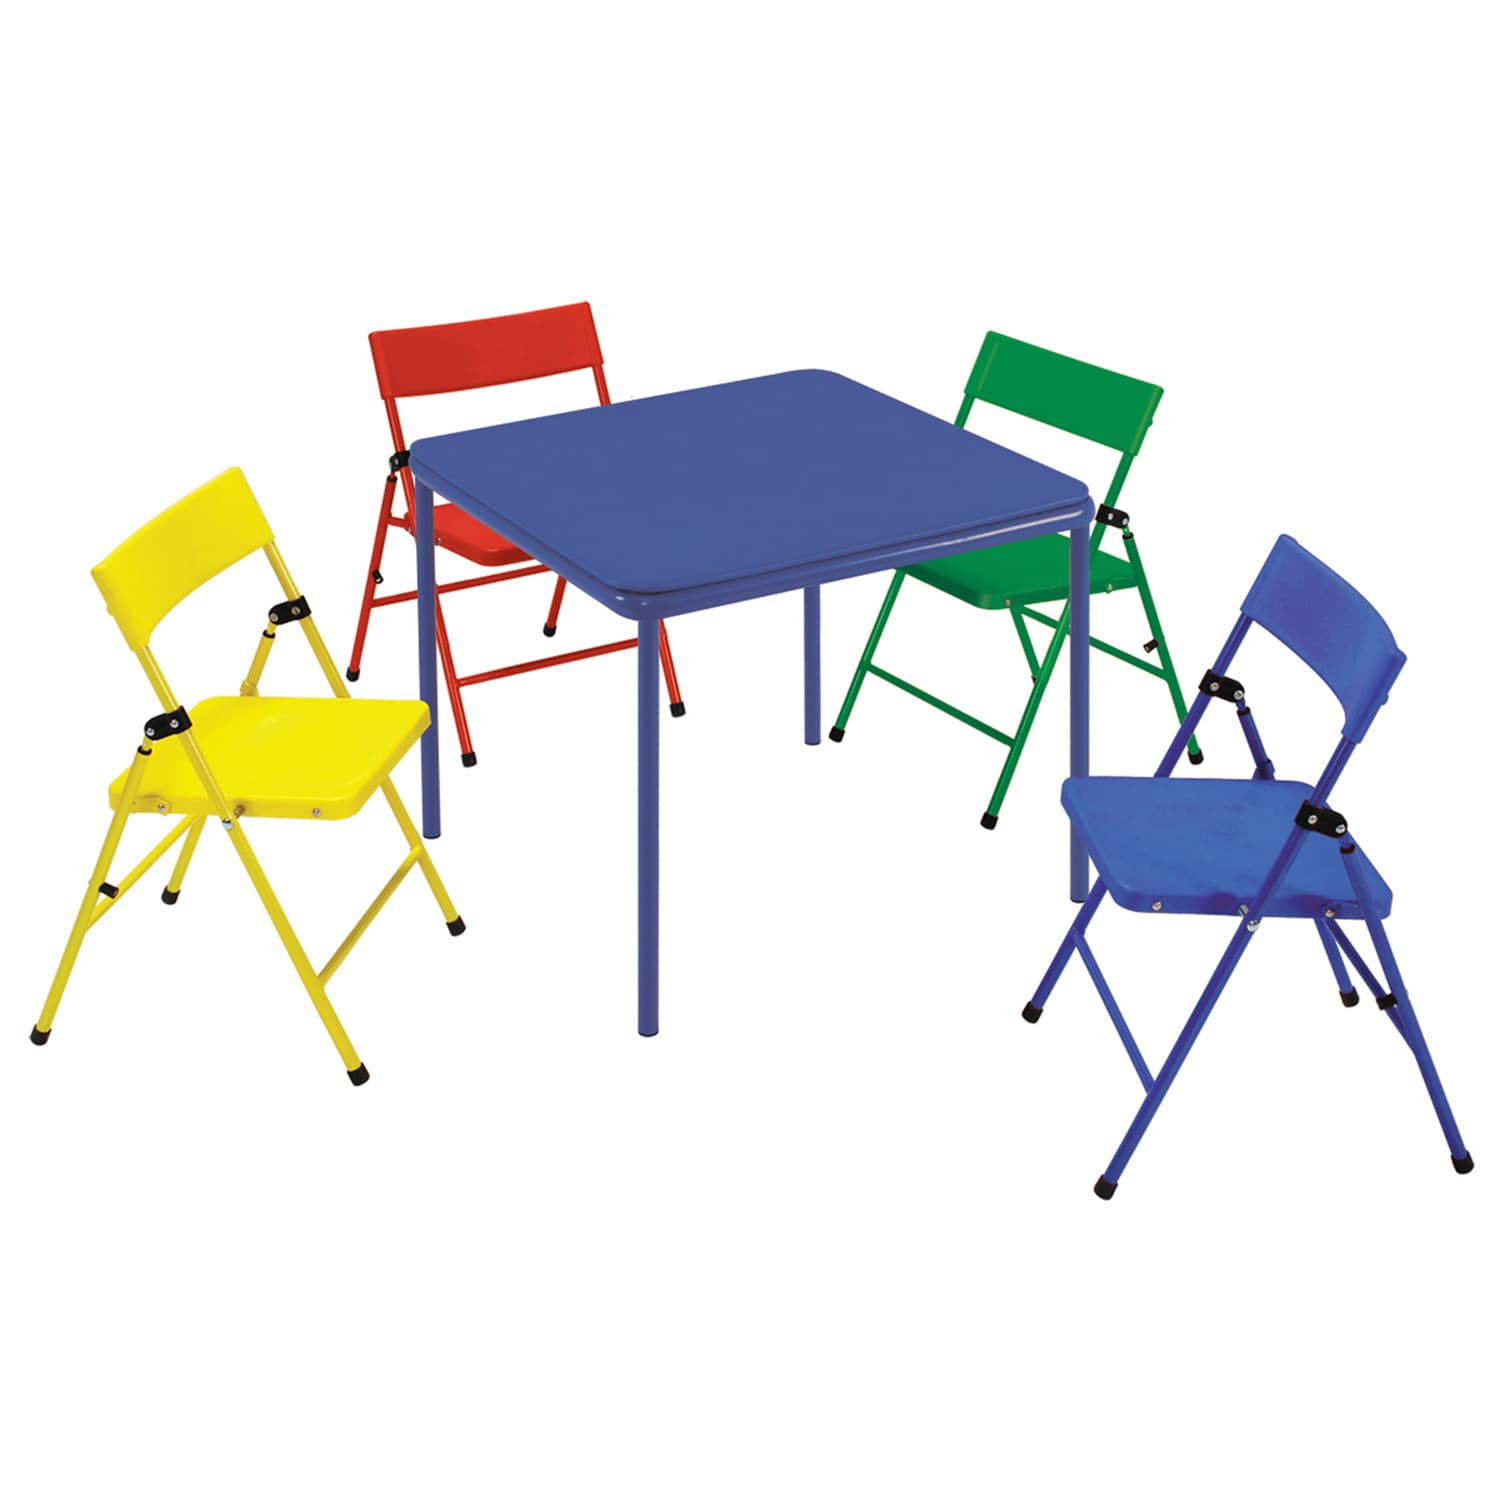 Folding Table And Chairs For Kids Cosco Kid 39s 5 Piece Colored Folding Chair And Table Set